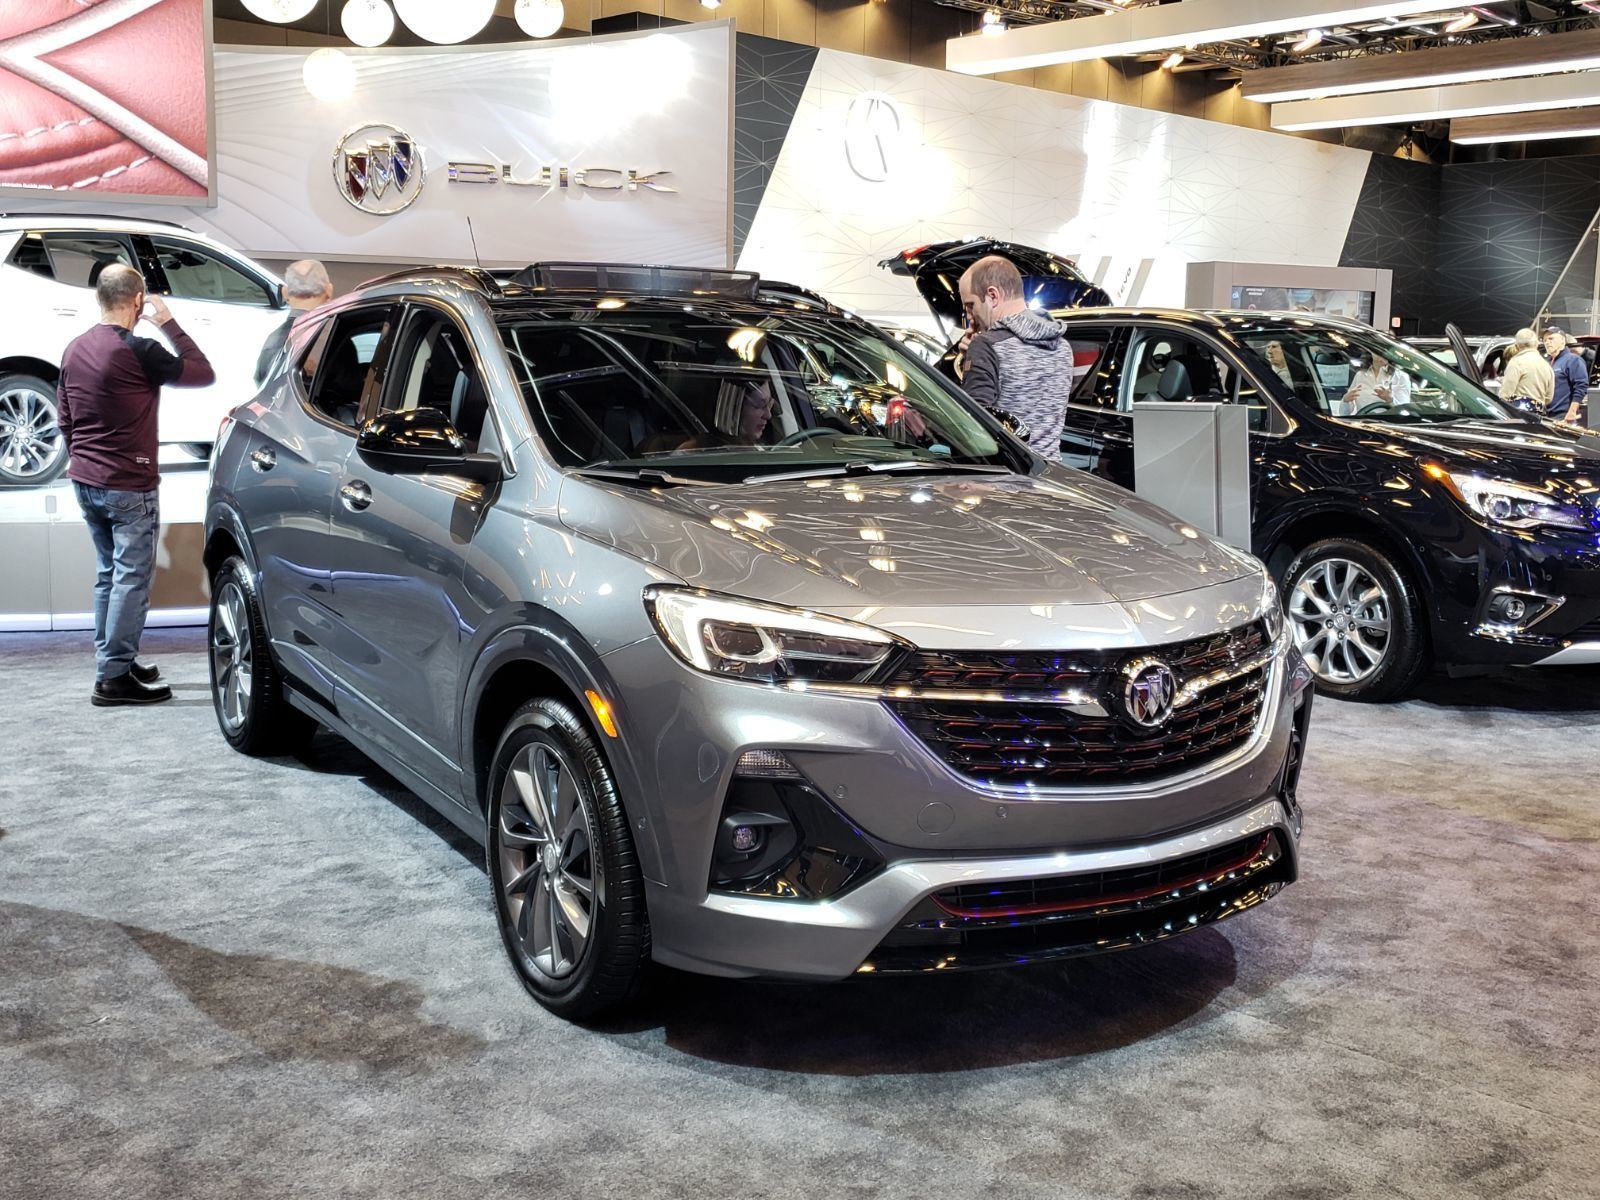 Discover The 2020 Buick Encore Gxstephanie Lacroix New 2021 Buick Encore Engine Options, Features, Incentives